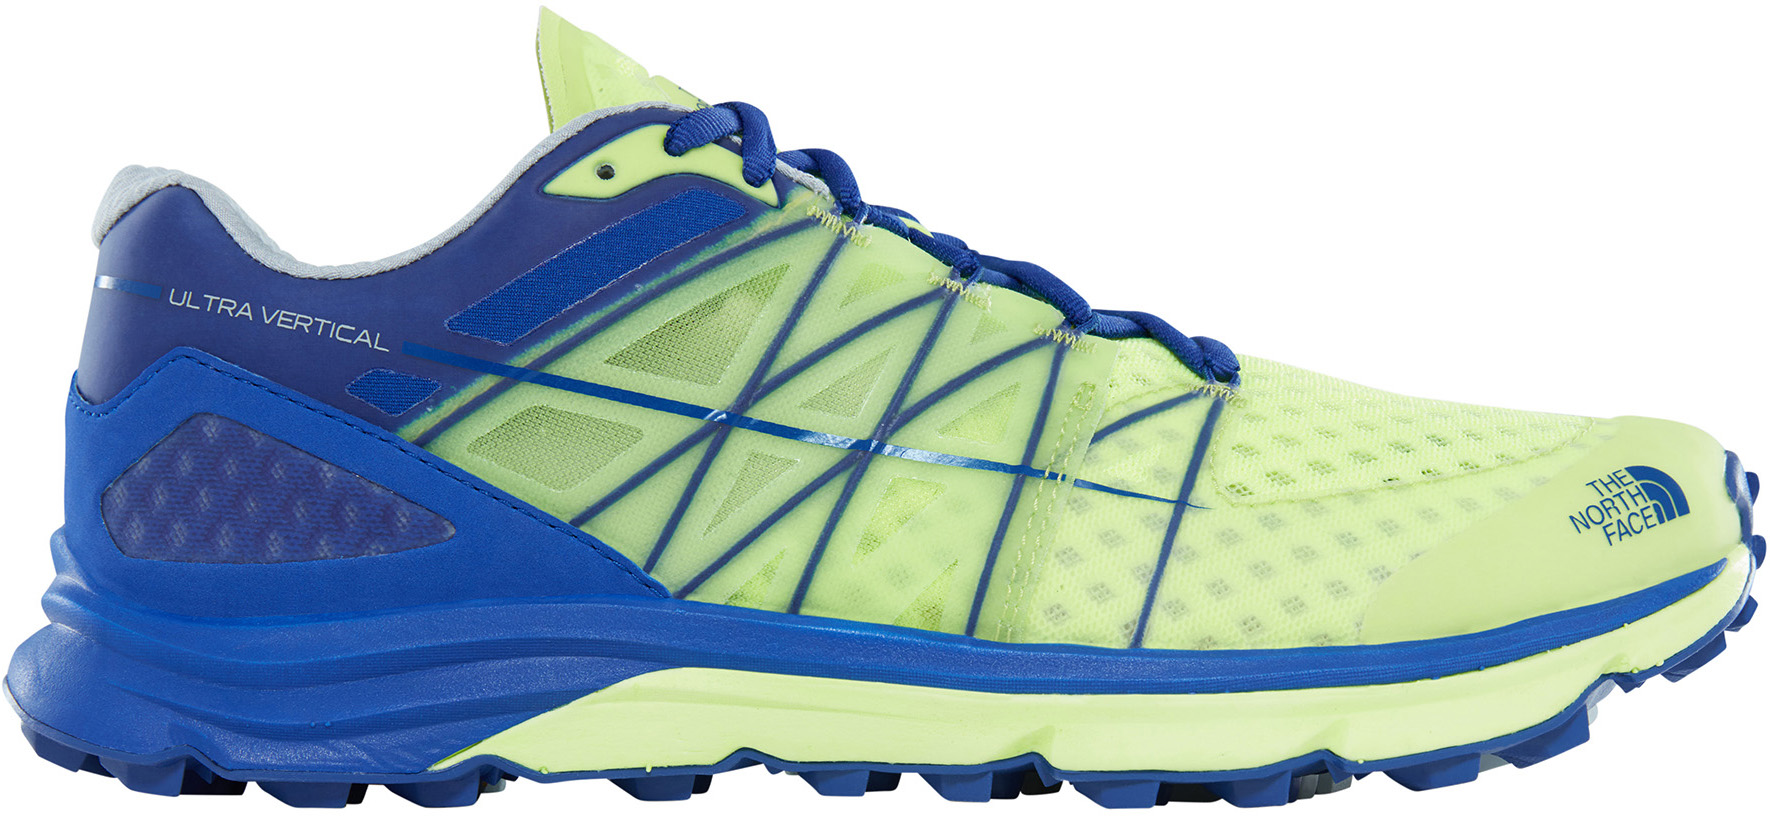 North Face Vertical The Chaussures Ultra BtQxshdCor